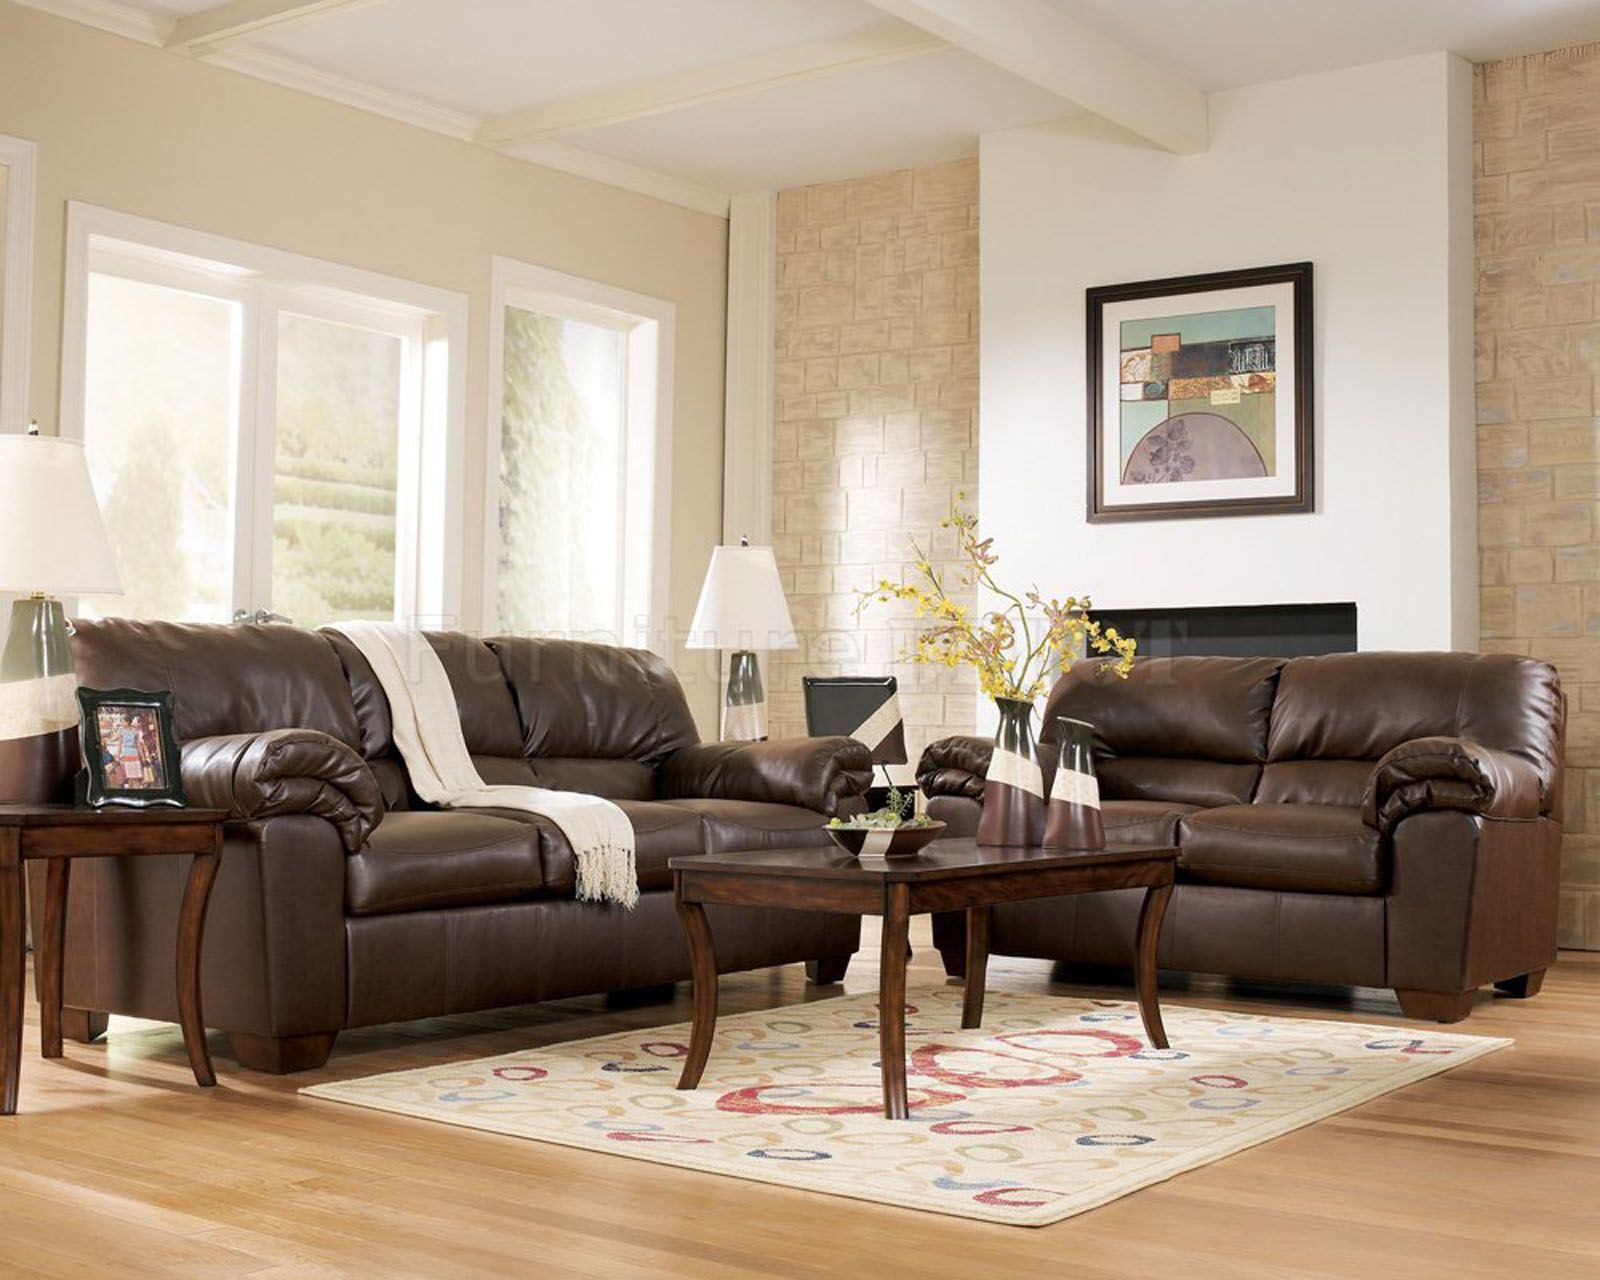 Charmant Interior Design Living Room Brown Sofa